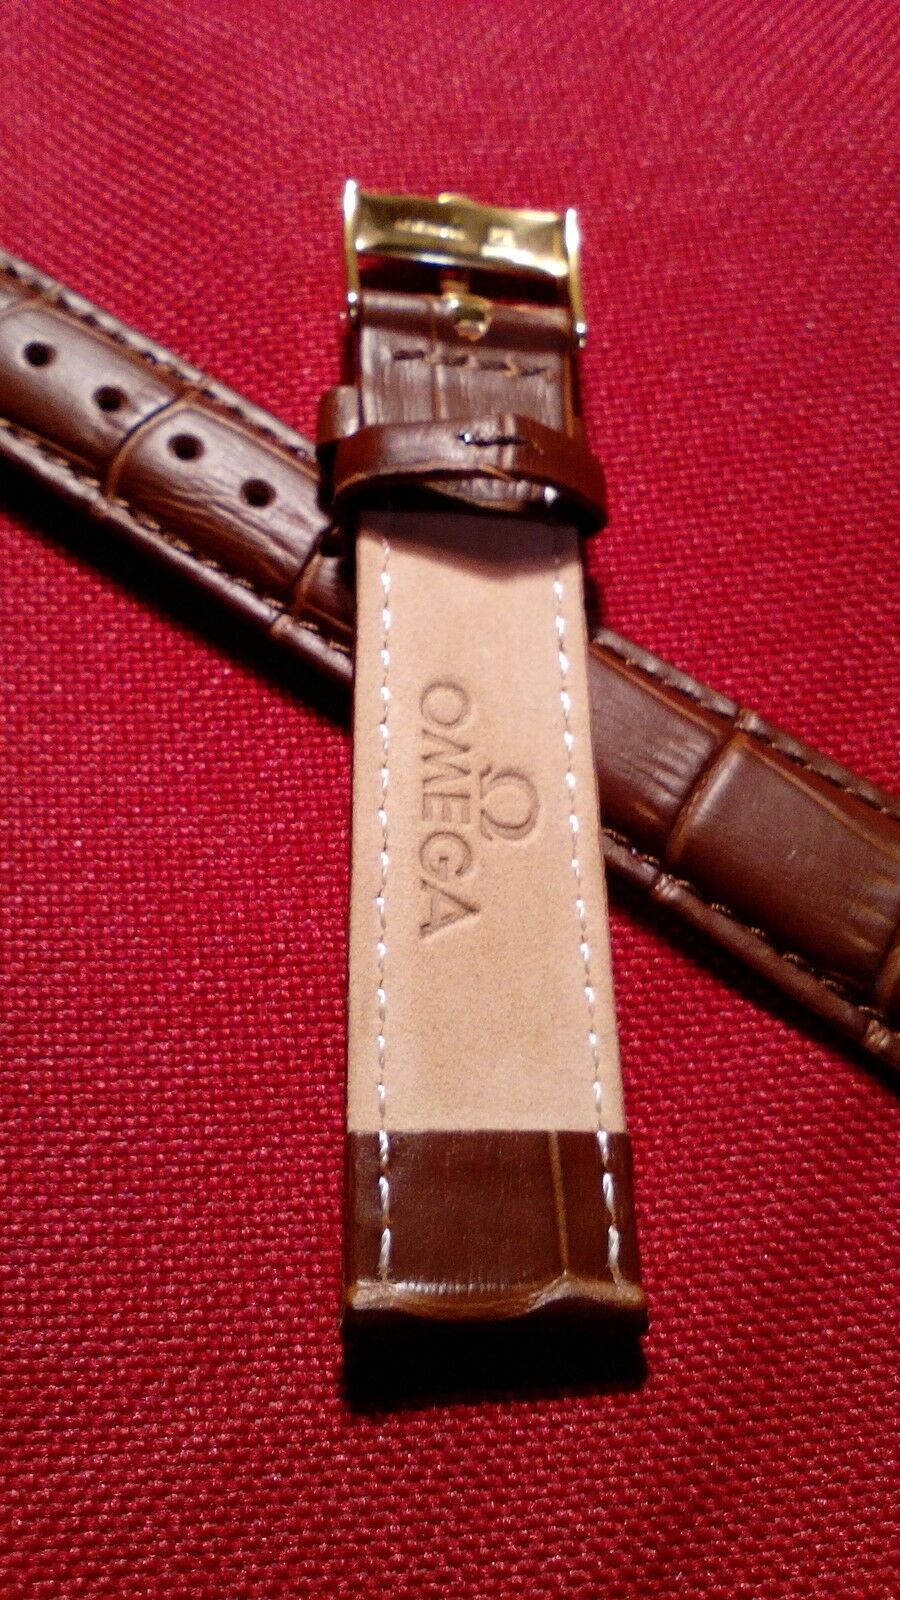 cinturino in vera pelle marrone, marcato Omega swiss made, ansa 18mm fibbia gold